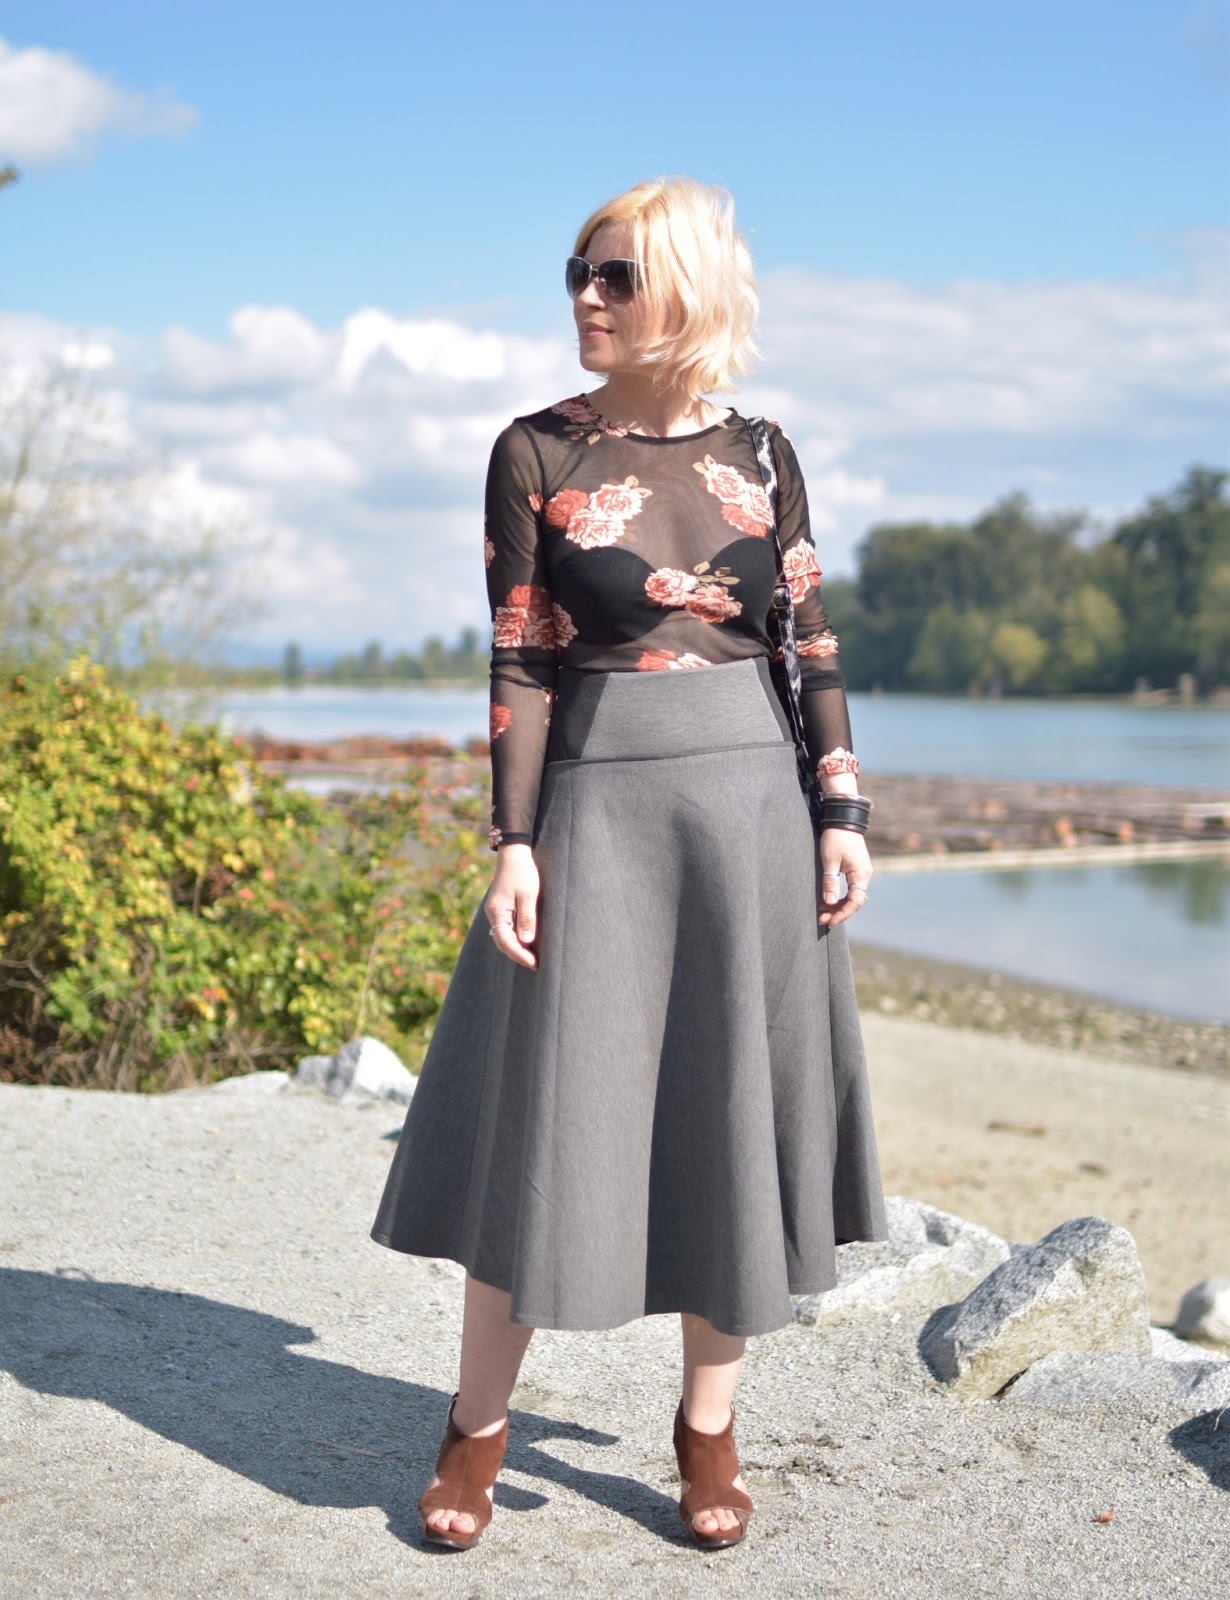 Growth Factor:  Flared midi skirt, sheer floral top, and leopard backpack